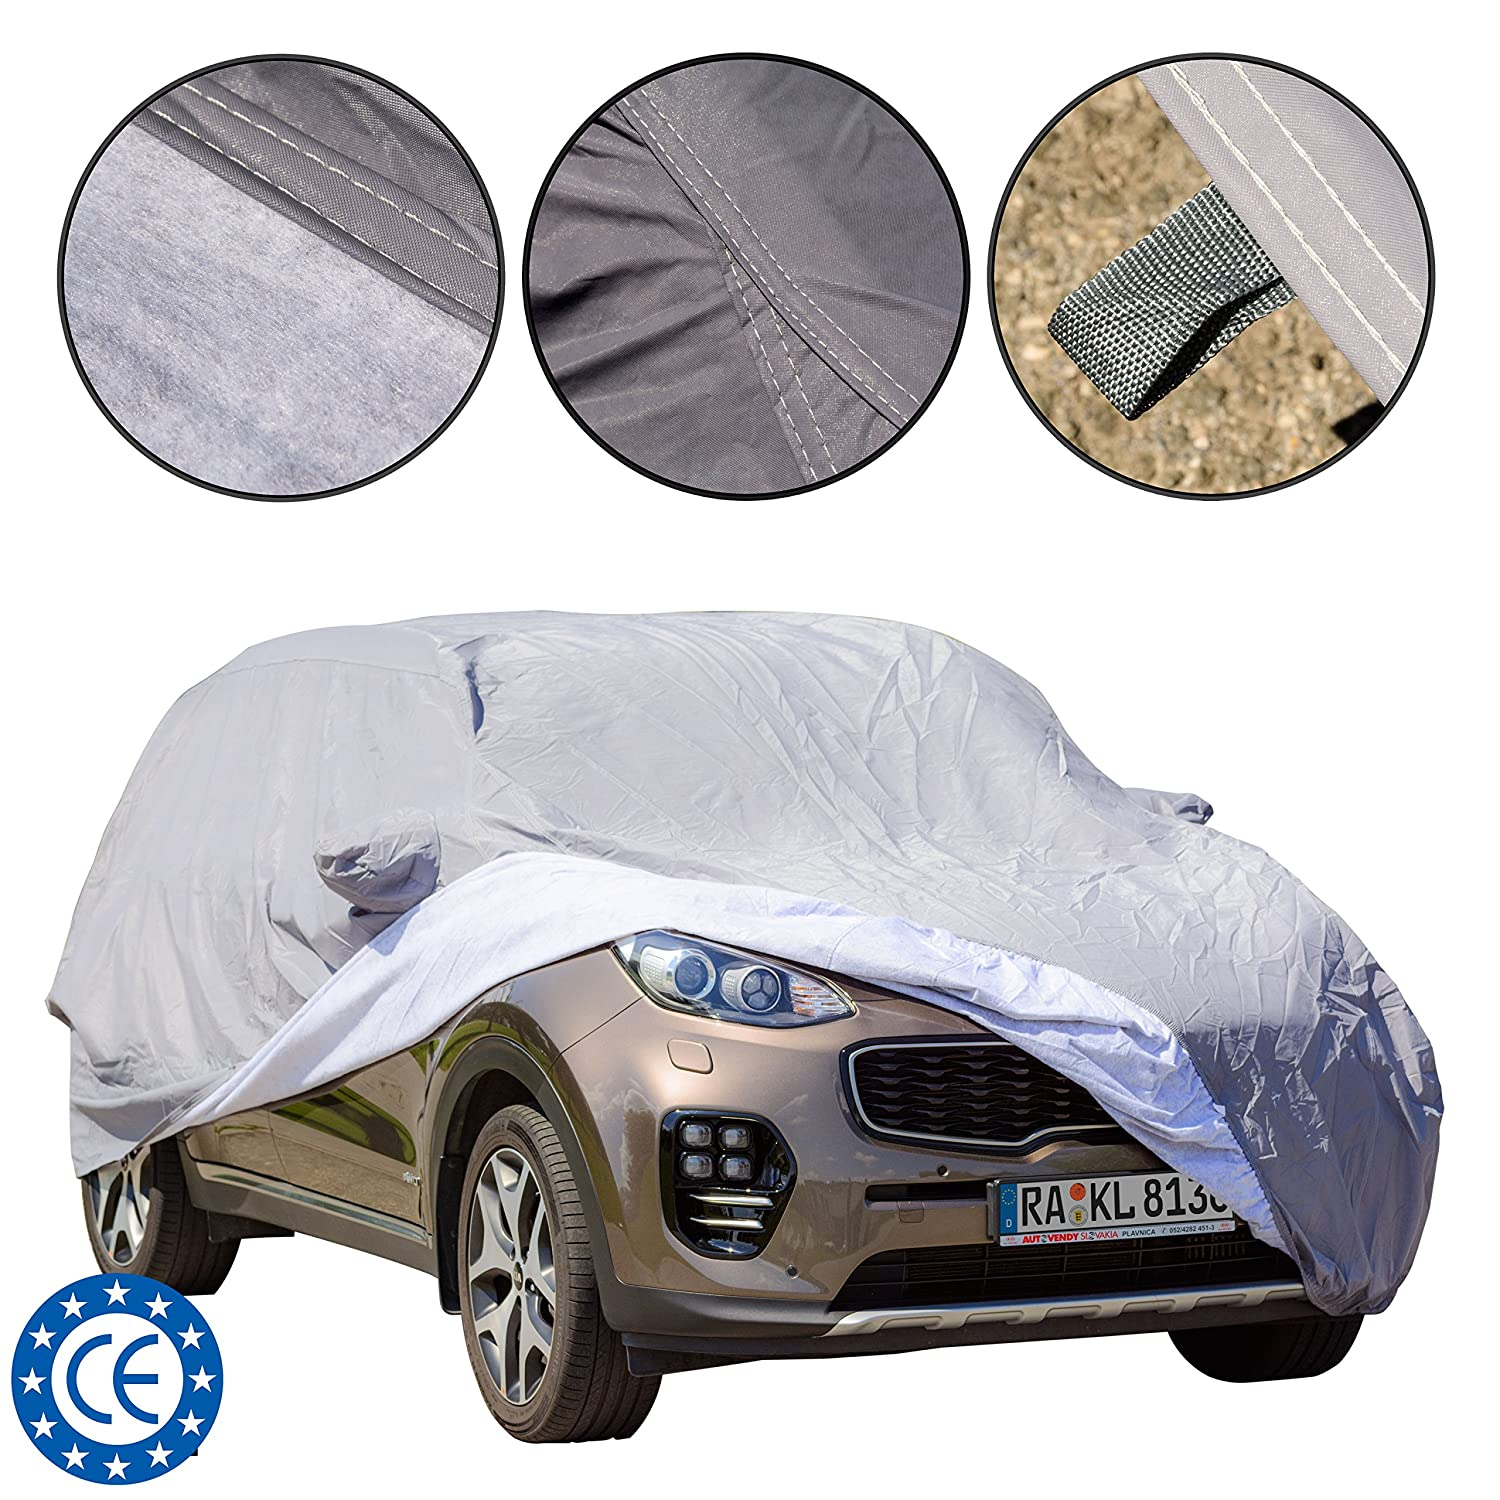 Dust // UV Proof Heavy Duty Waterproof Cotton inside lining Scratch Proof Durable Car Cover L 480*193*155 cm Universal fit for SUV